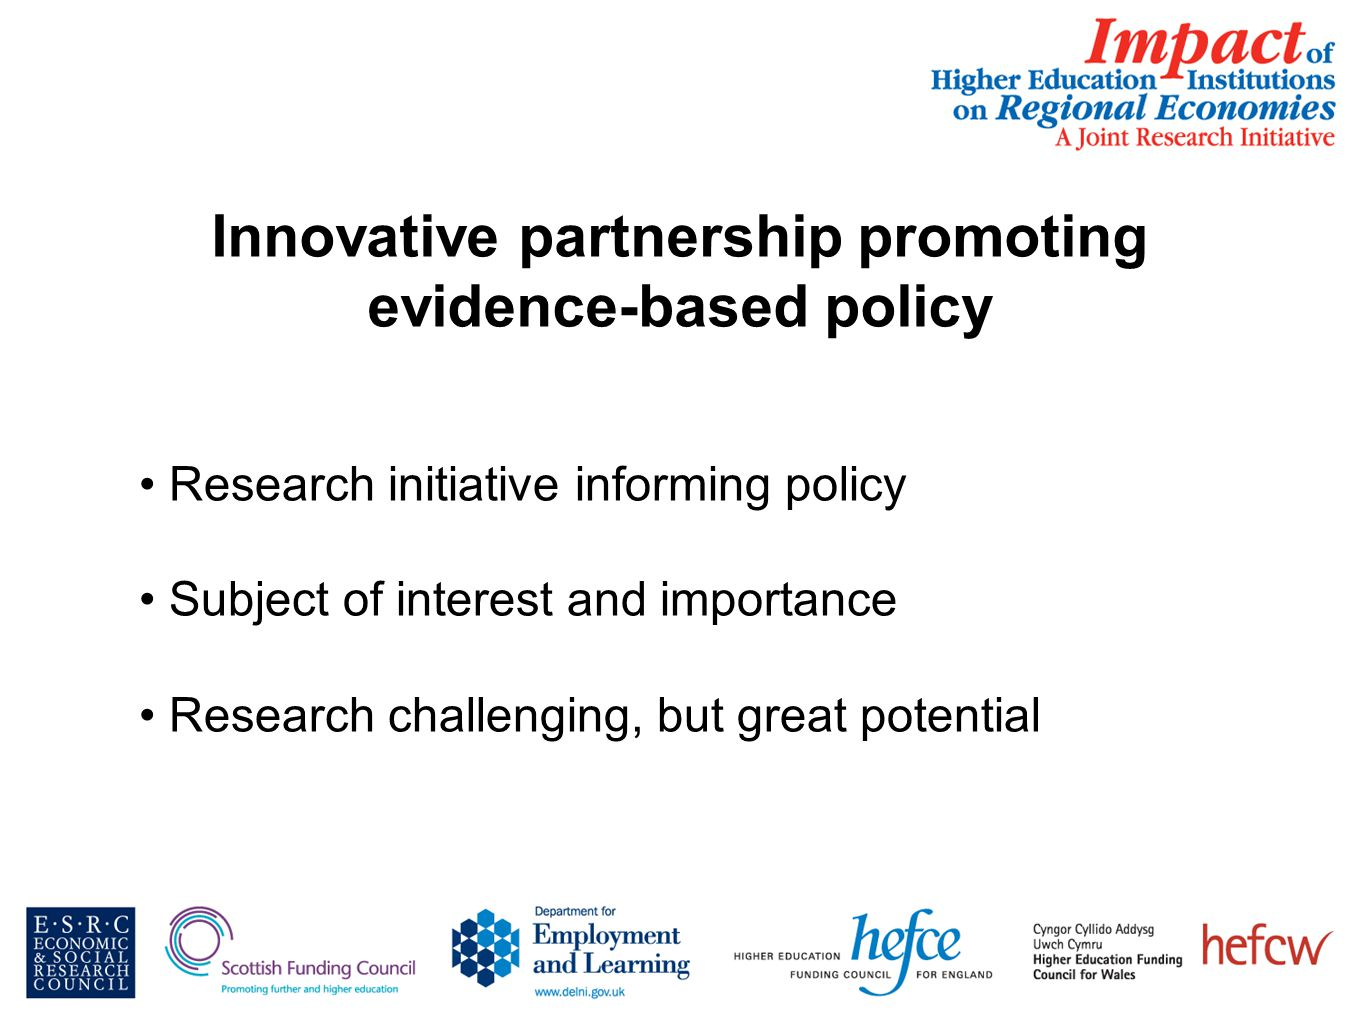 Innovative partnership promoting evidence-based policy Research initiative informing policy Subject of interest and importance Research challenging, but great potential